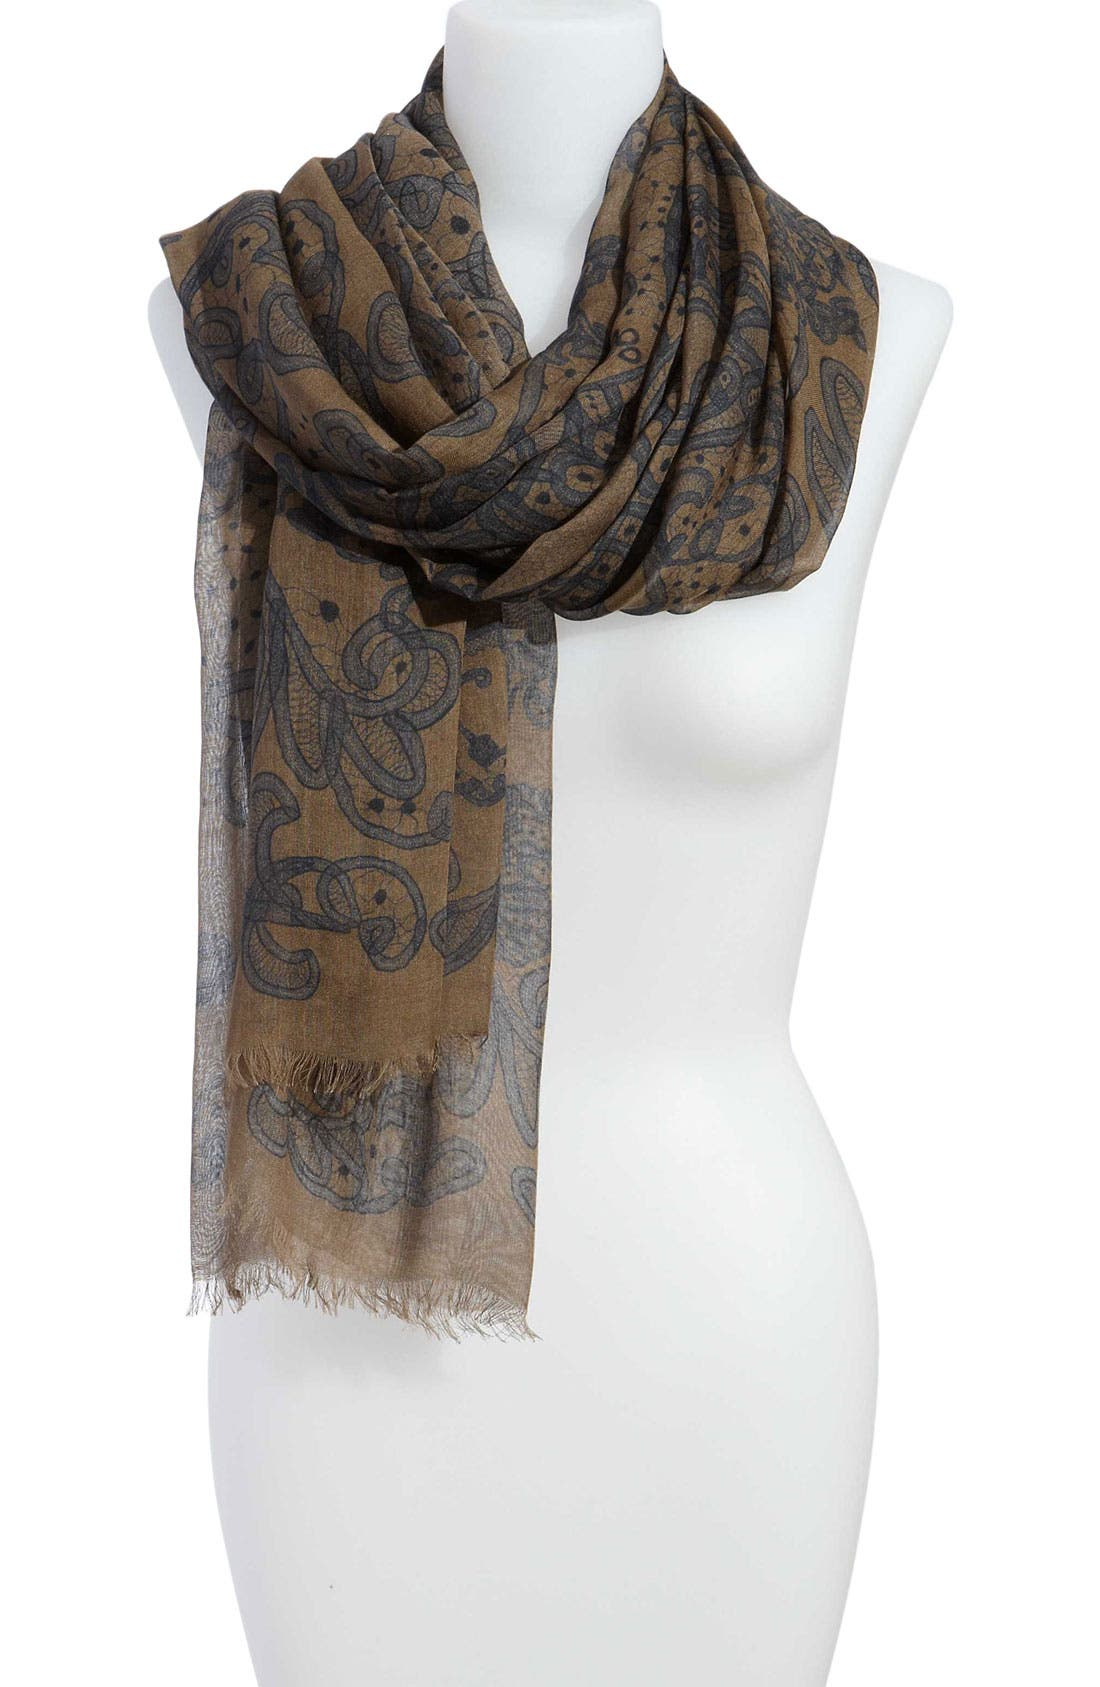 Alternate Image 1 Selected - Alexander McQueen 'Lace Skull' Pashmina